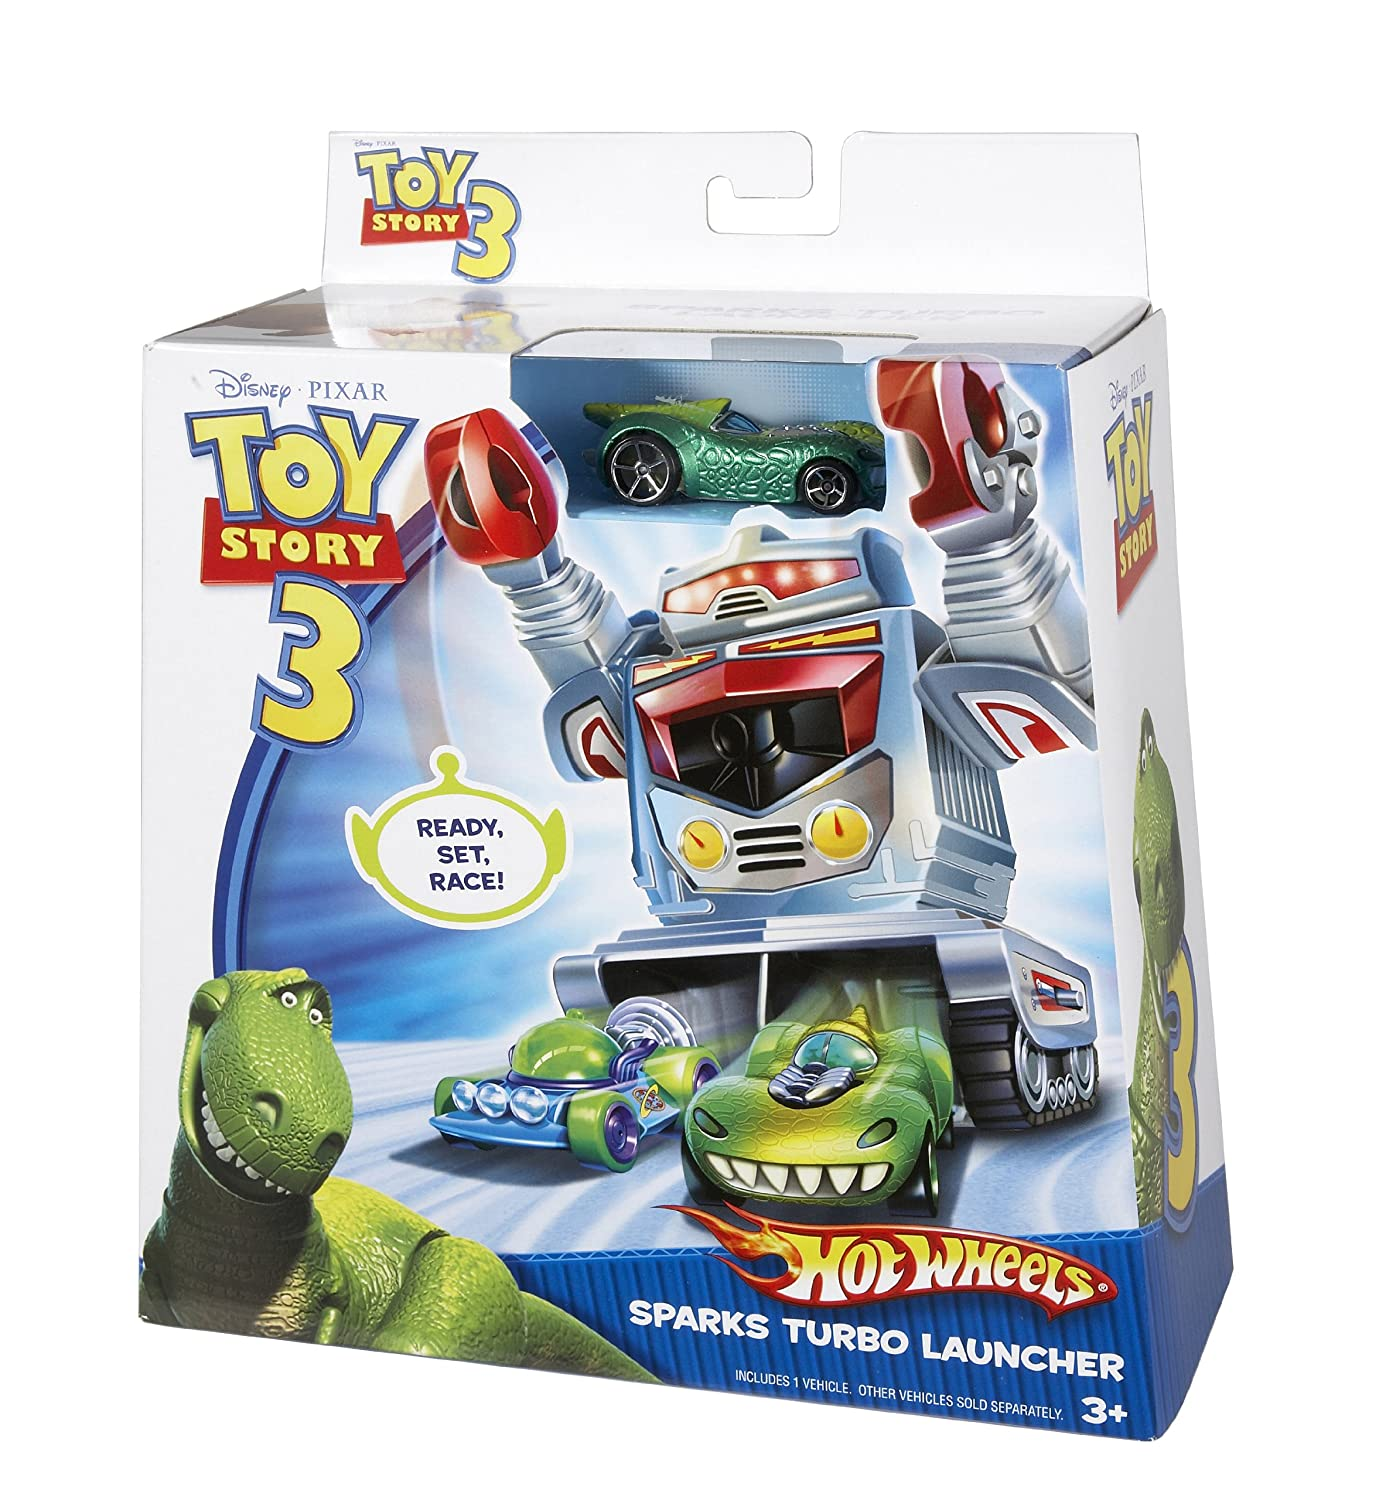 Hot Wheels Toy Story 3 Sparks Turbo Launcher by Hot Wheels (English Manual): Amazon.es: Juguetes y juegos